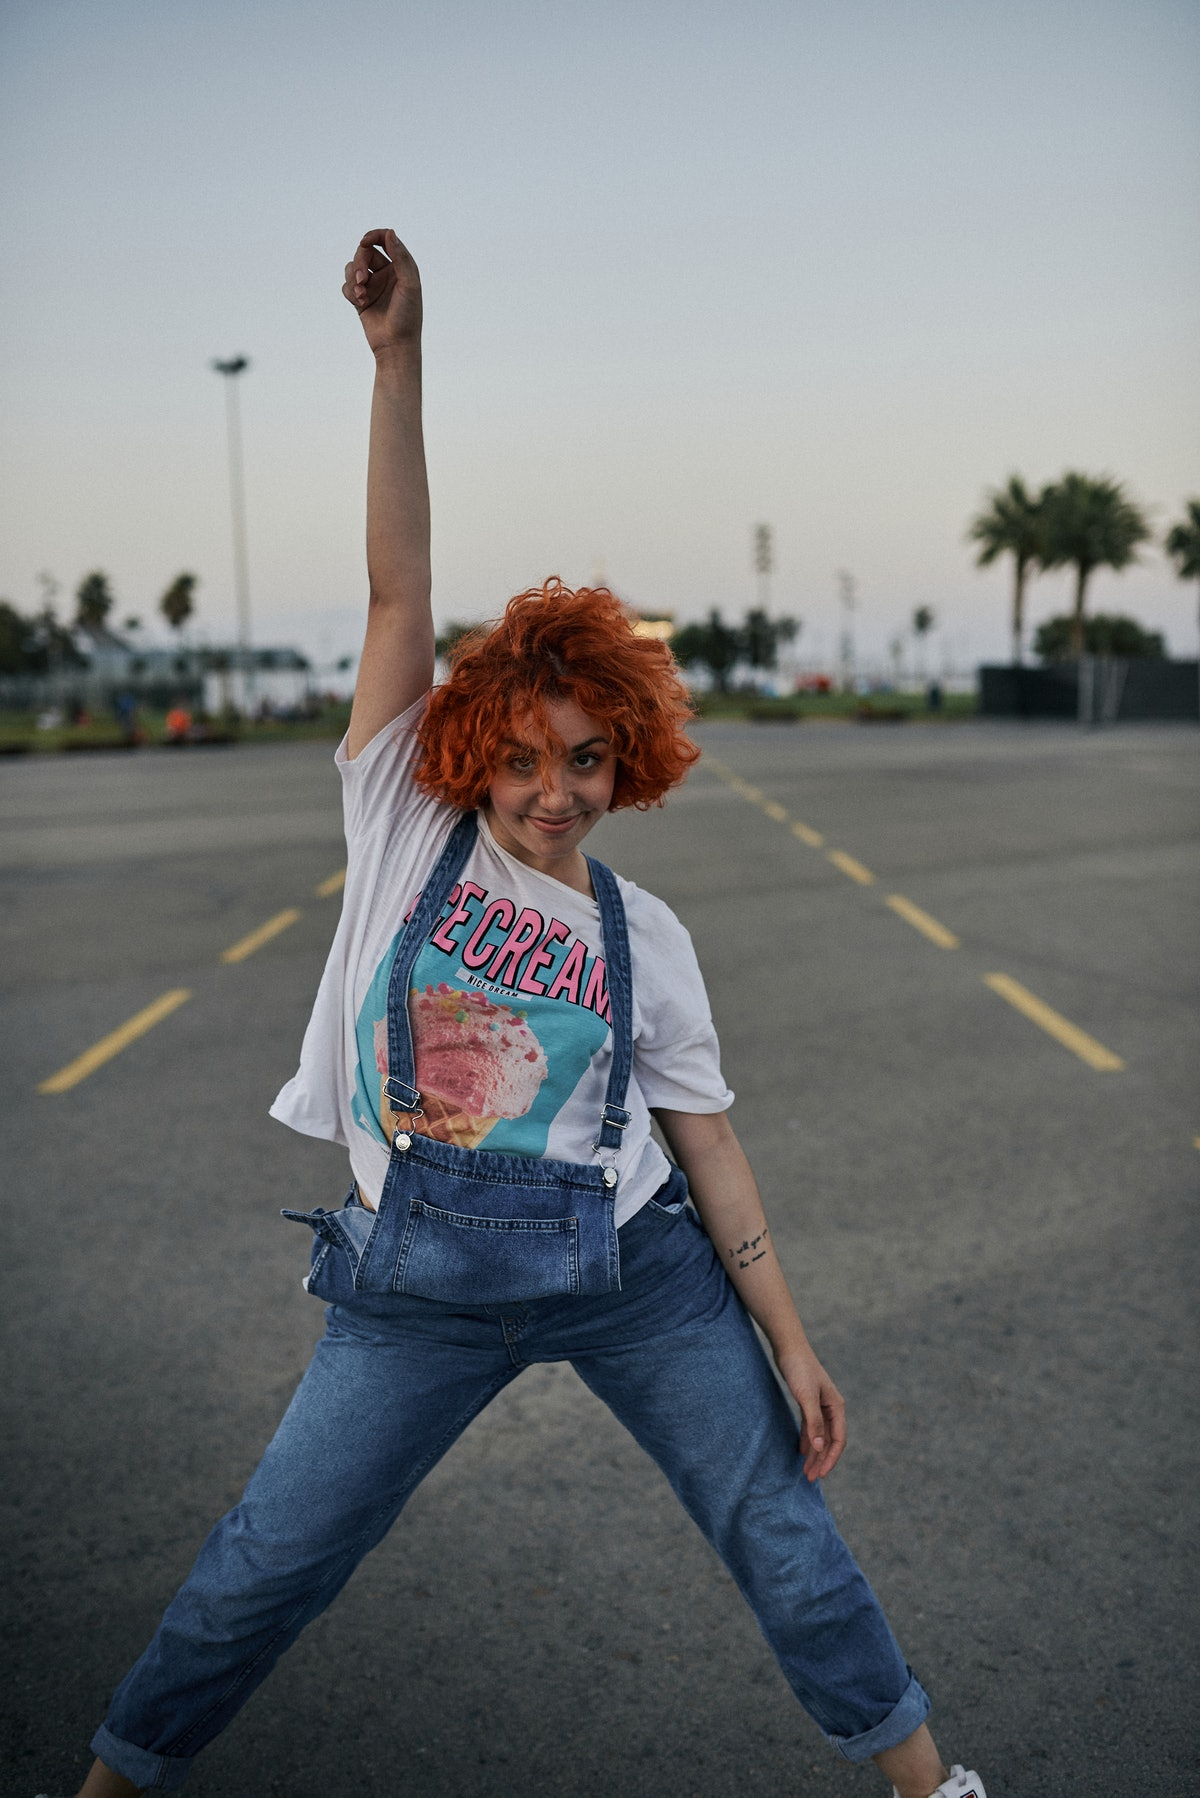 A young Latinx woman with orange hair and spunky style poses in a parking lot with palm trees at dus...